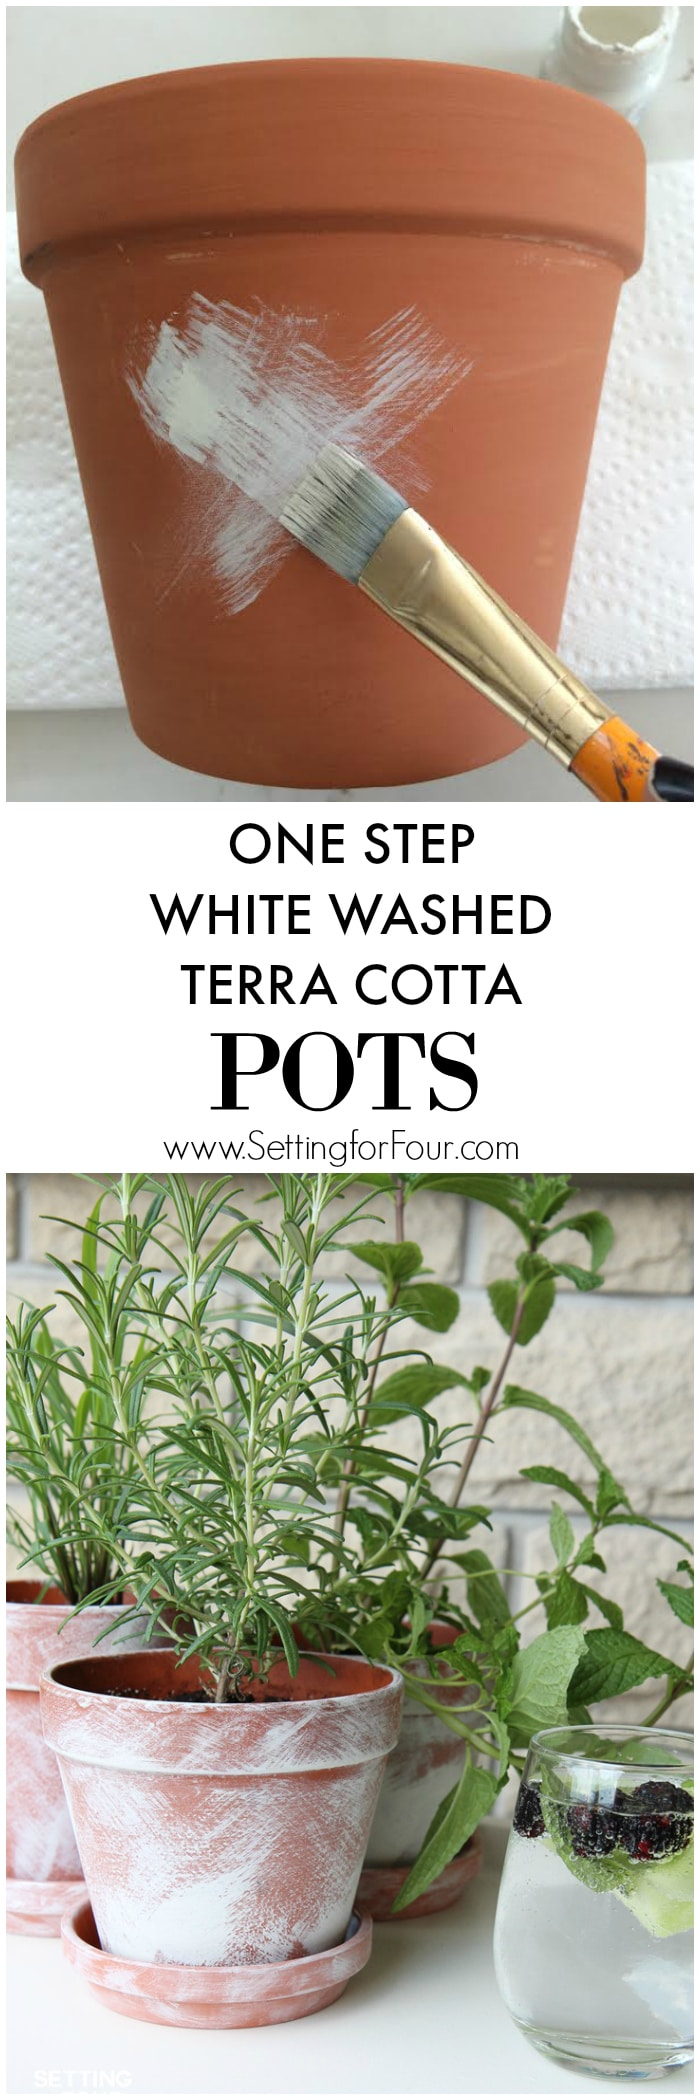 Learn how to make QUICK AND EASY DIY White Washed Terra Cotta Pots in just 10 minutes to plant herbs, flowers and succulents! See the tutorial and supply list to make these painted plant pots for your home or as beautiful gift ideas! Use them to decorate your home indoors or outside on your porch, patio or deck.